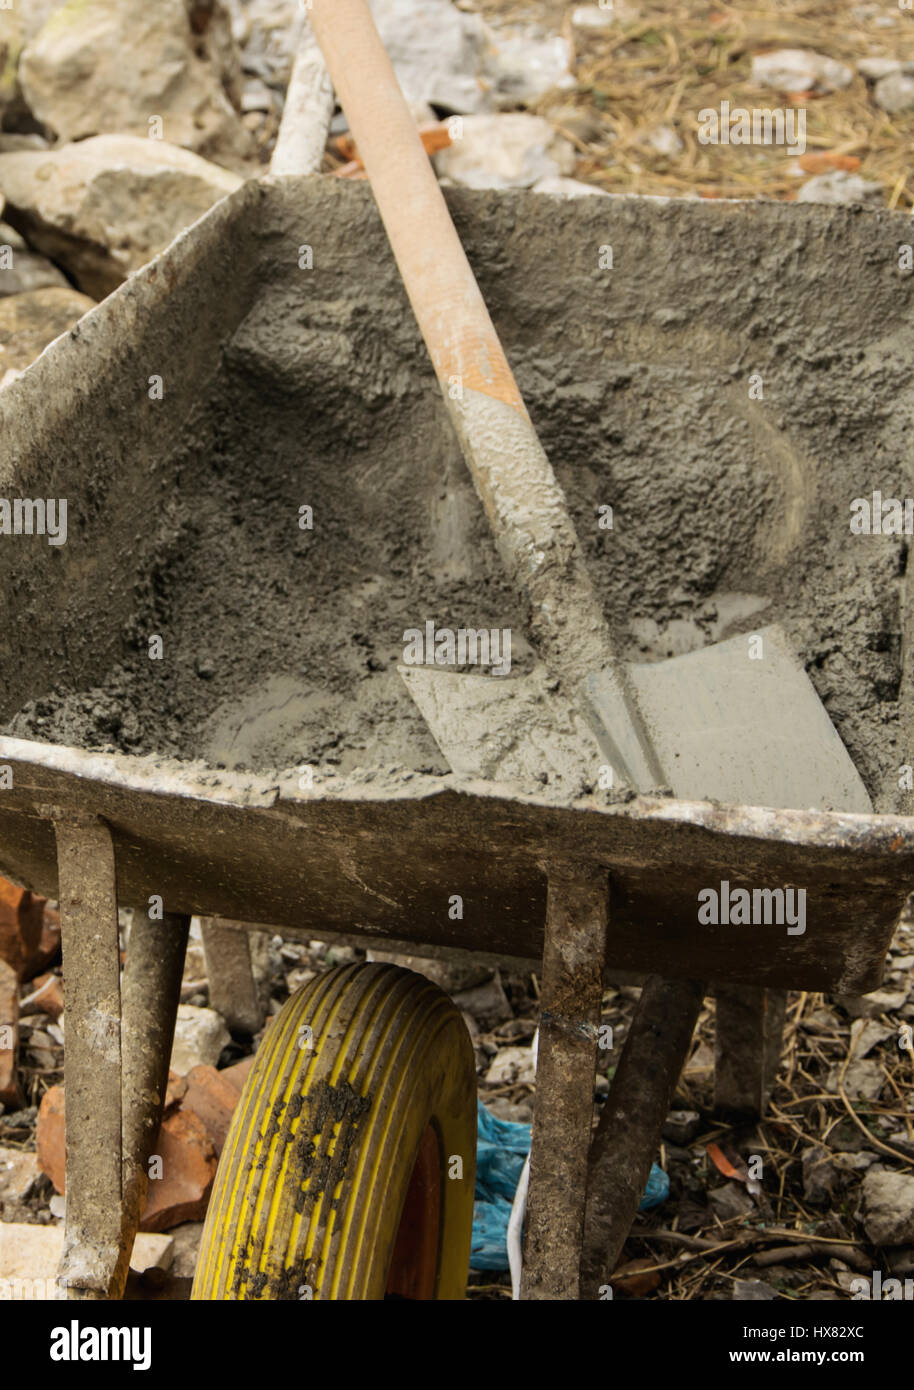 Wheelbarrow with cement and shovel, on the yard work - Stock Image